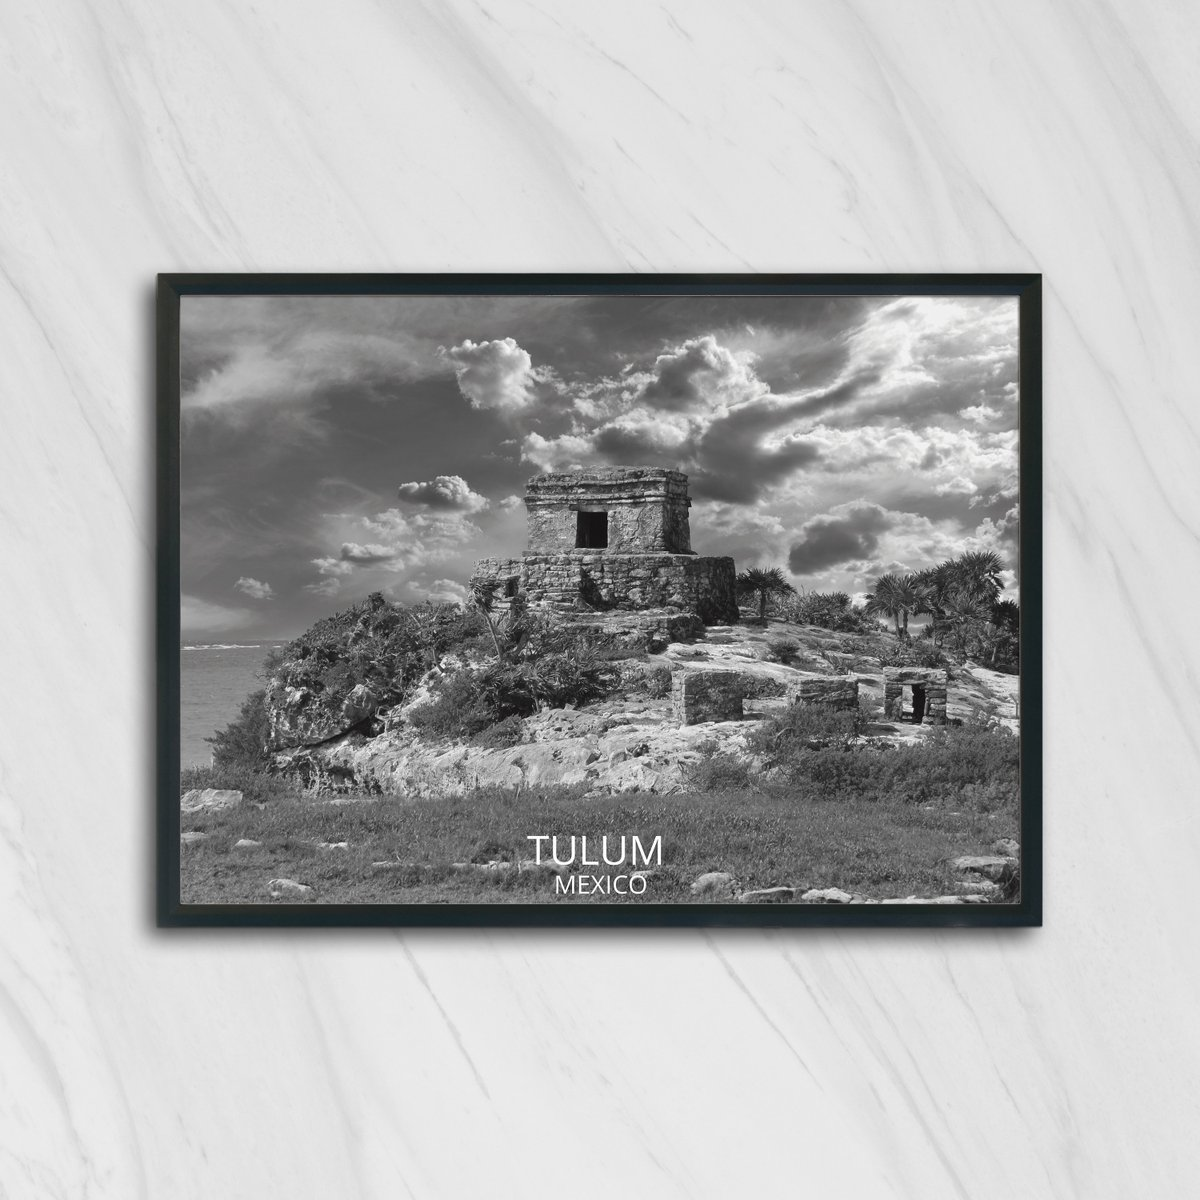 Excited to share the latest addition to my #etsy shop: Tulum art, mayan ruins, mayan designs, tulum decor, tulum print, tulum poster, mayan wall art, mayan decor, mayan art, mayan aztec,  #art #drawing #black #moving #christmas #white #horizontal